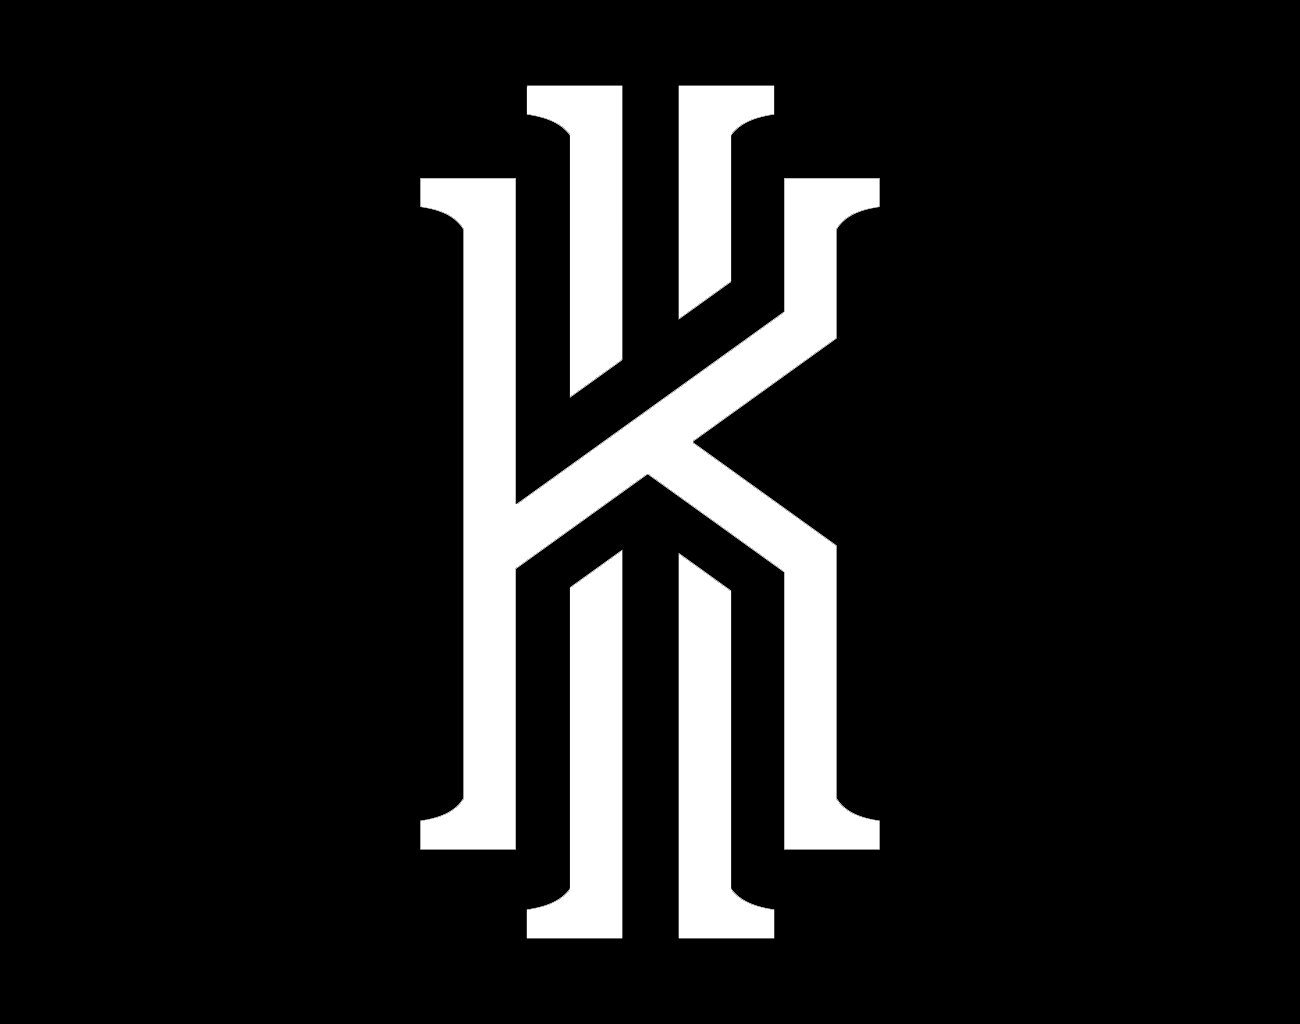 Kyrie Irving Logo, symbol meaning, History and Evolution